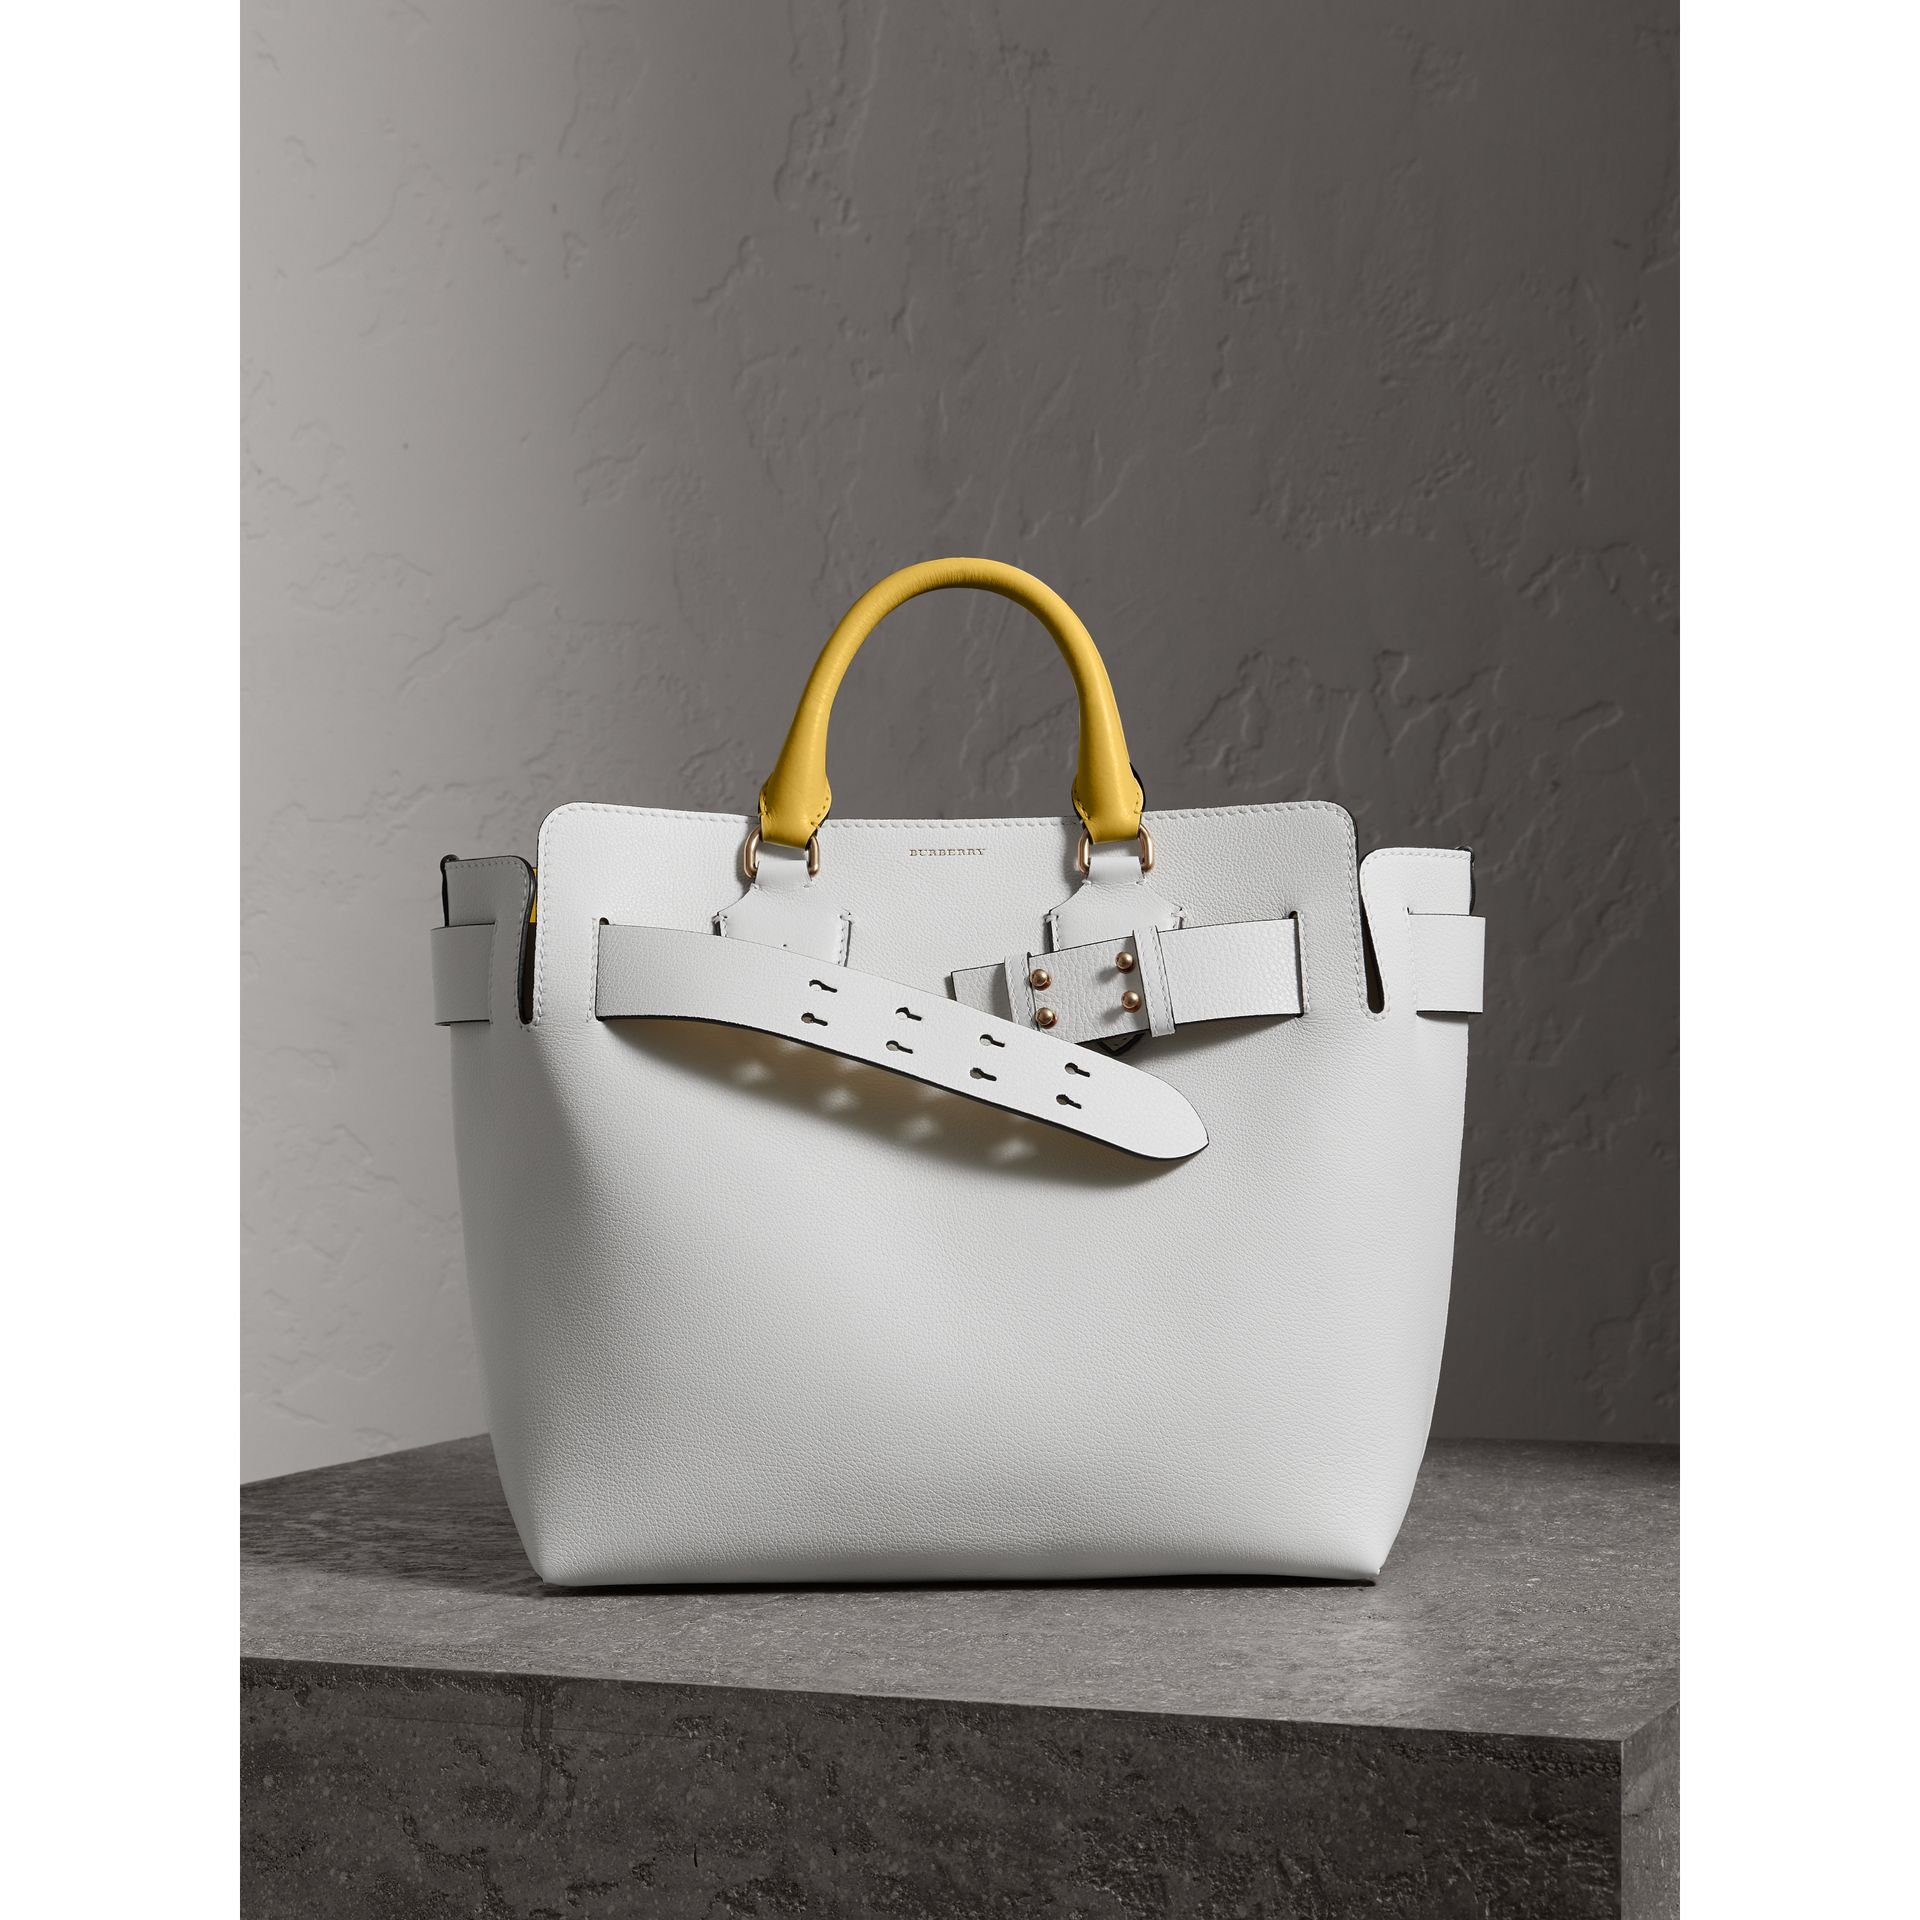 Sac The Belt moyen en cuir (Blanc Craie/jaune) - Femme | Burberry Canada - photo de la galerie 4